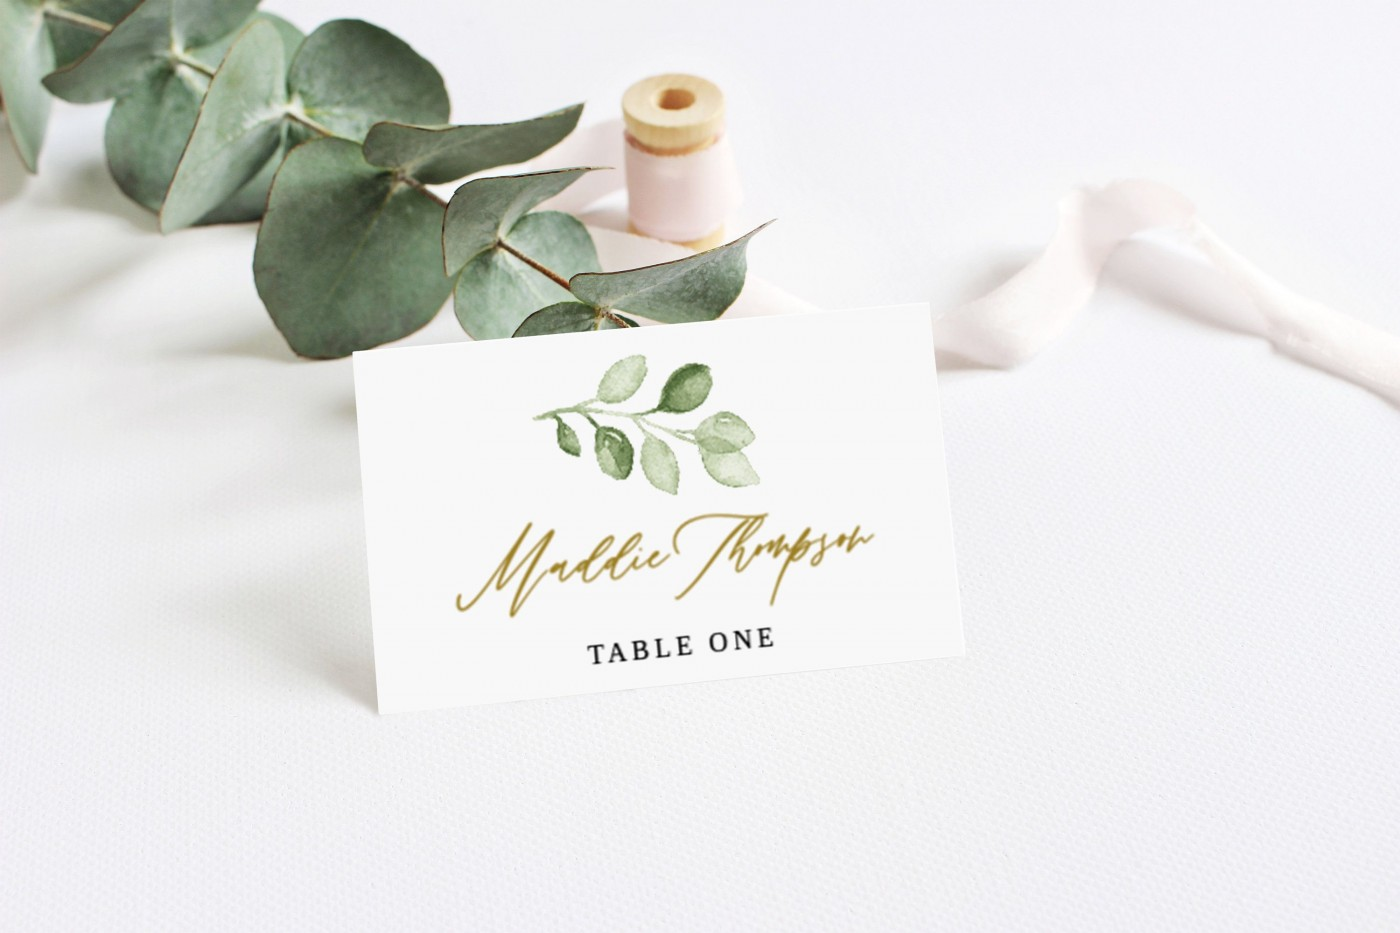 000 Fascinating Name Place Card Template Image  Free Word Publisher Wedding1400